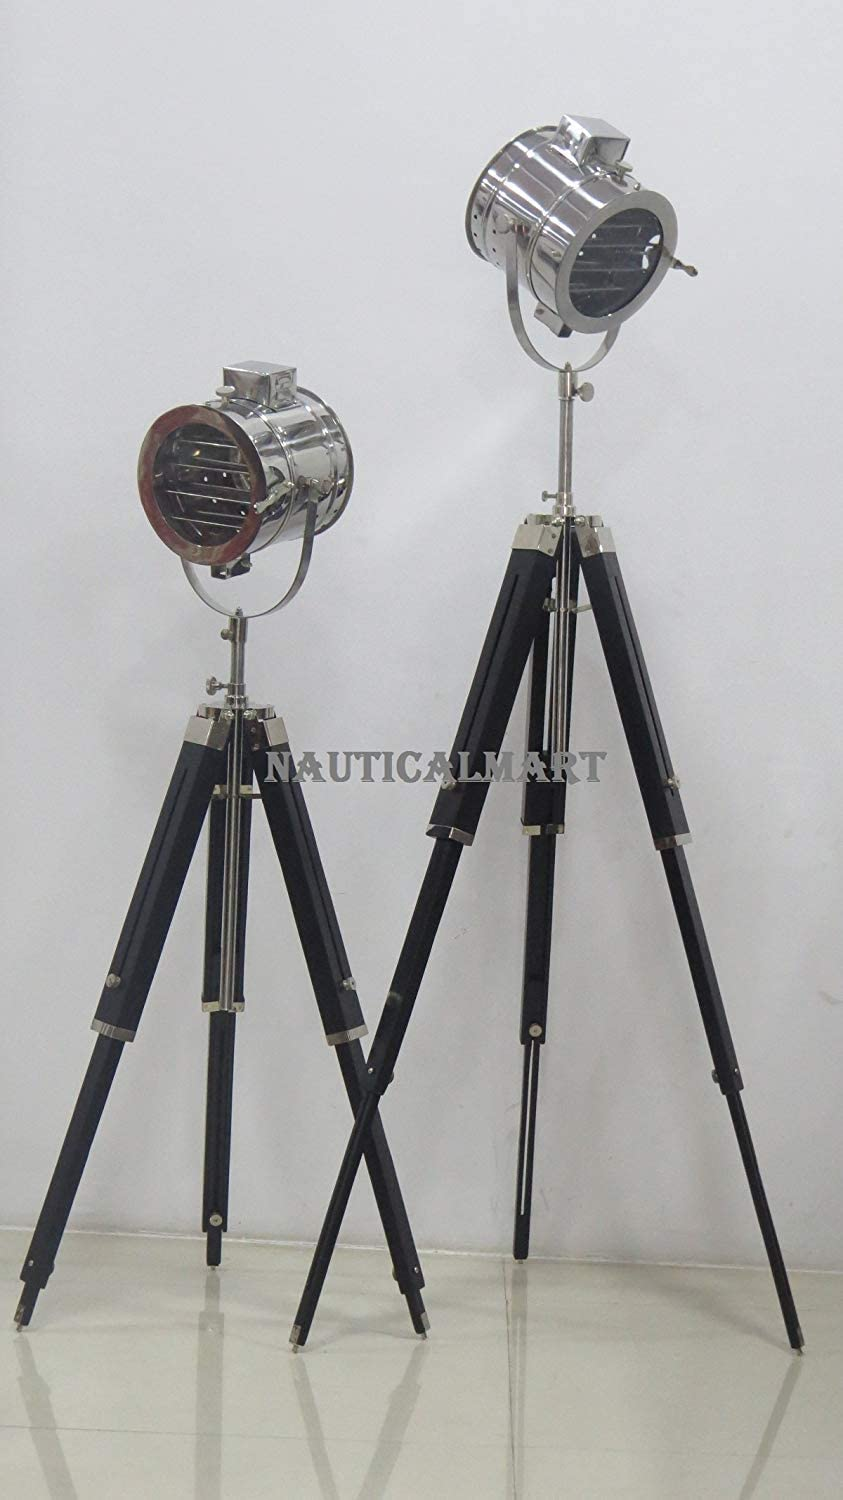 Lamp Decor Vintage Industrial Searchlight Theater Stage Spotlight Tripod Floor Lamp - Set of 2